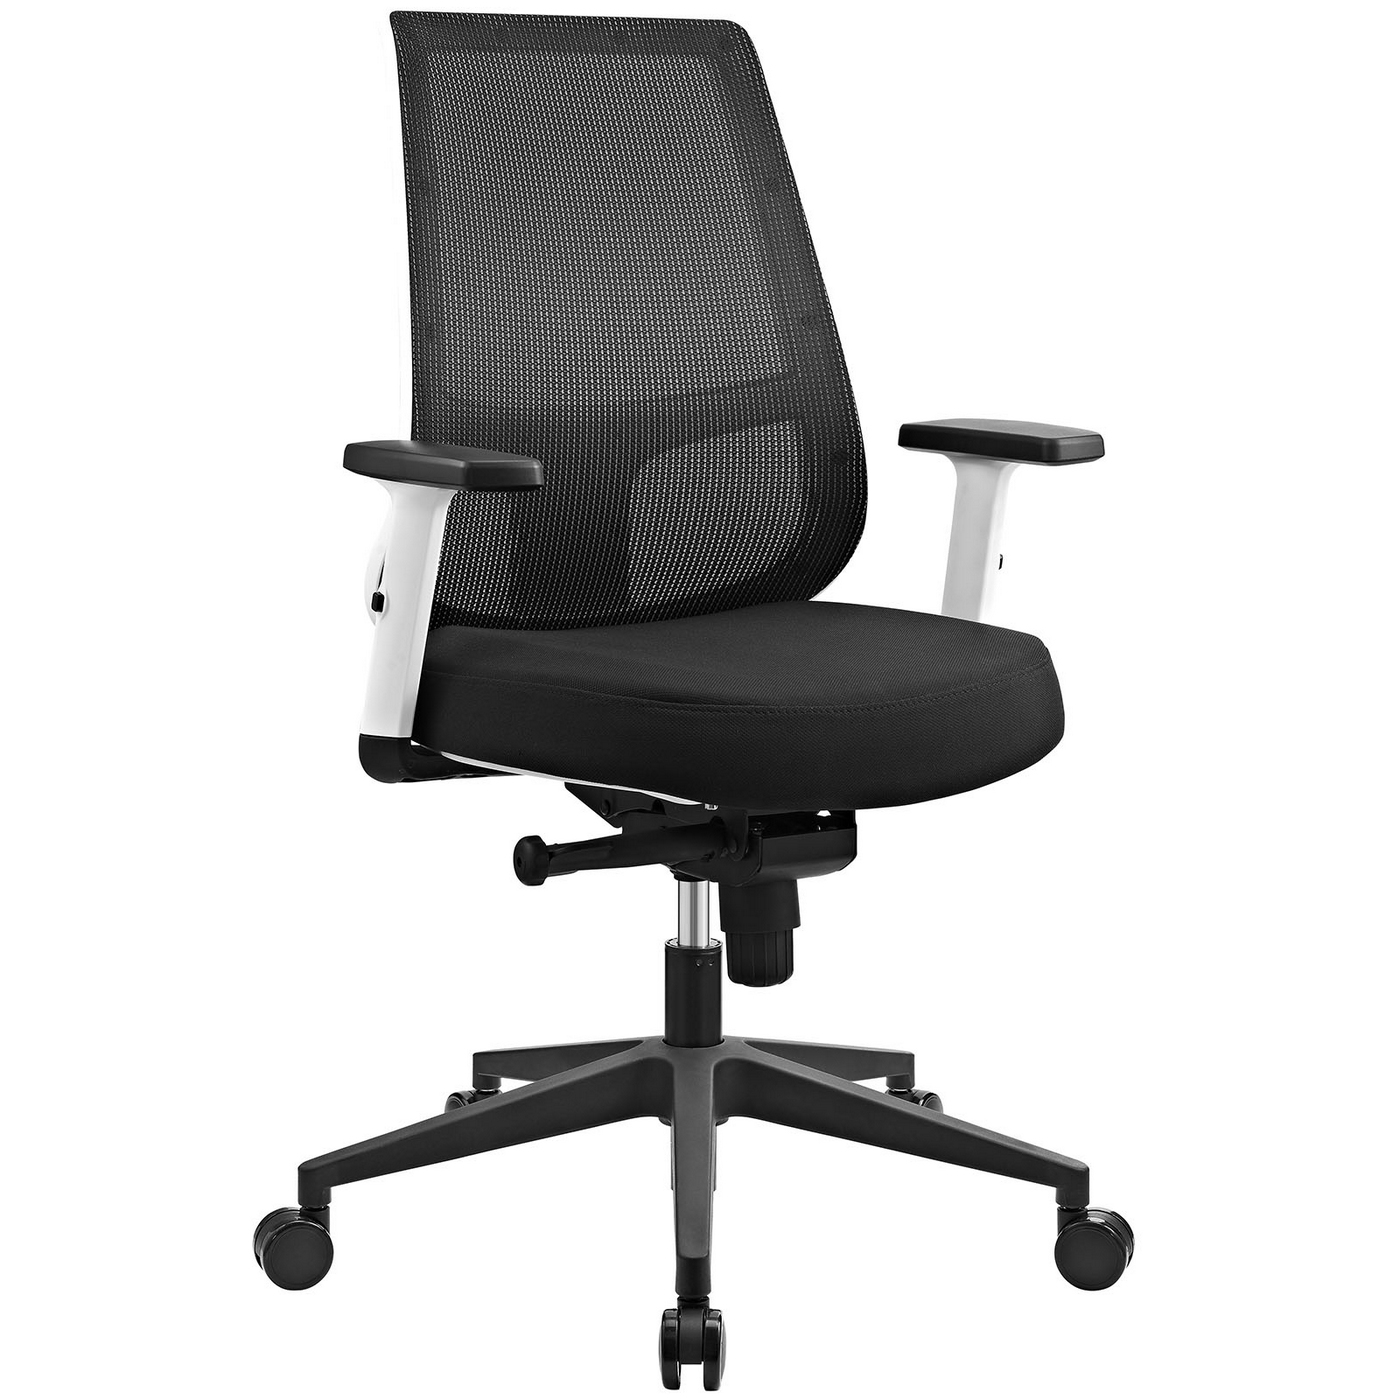 Mesh Ergonomic Office Chair Pump Ergonomic Mesh Back Office Chair W White Frame